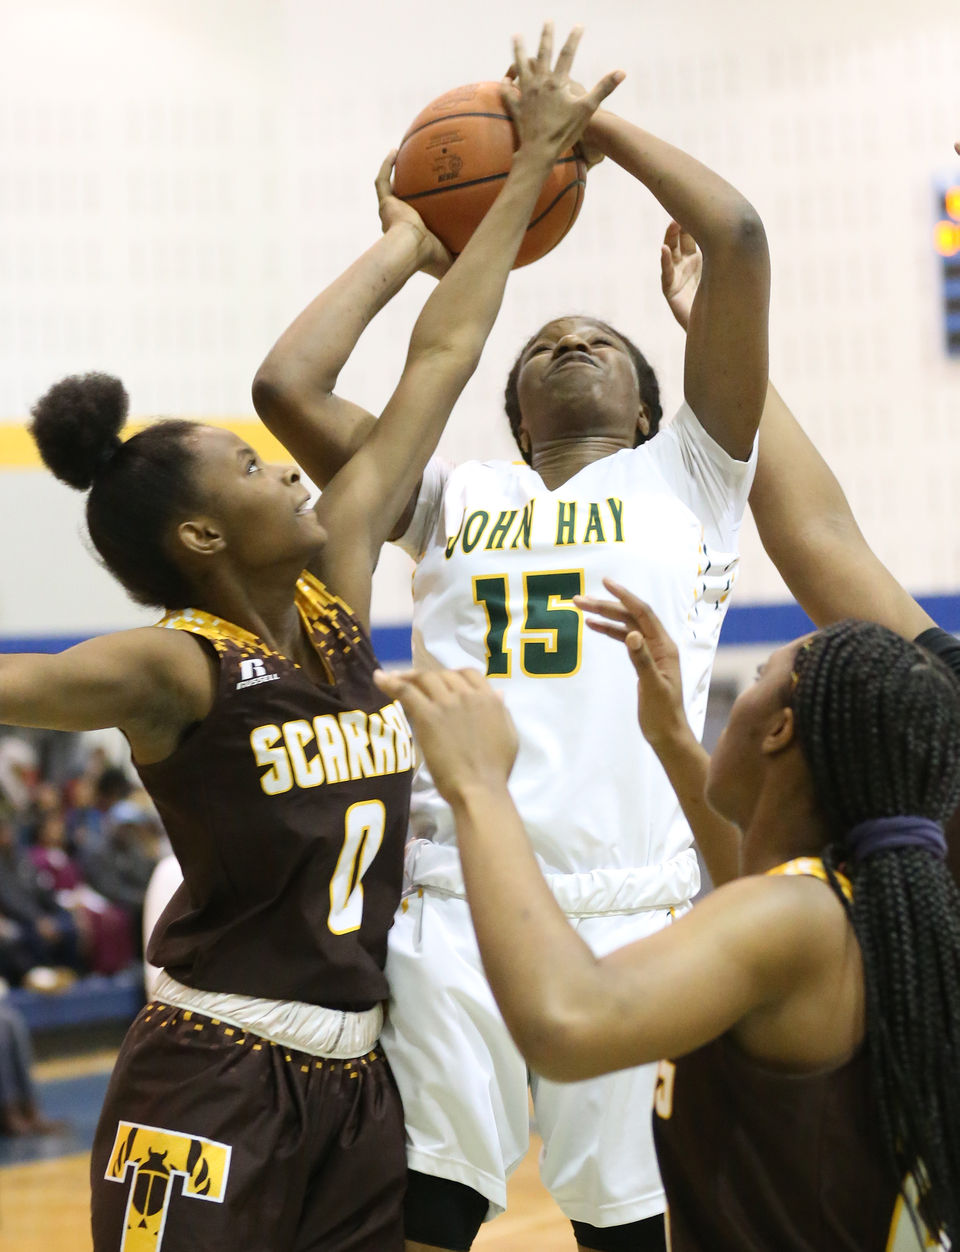 Cleveland high school girls basketball cleveland john hay girls basketball wins first city championship with 67 34 win vs east fandeluxe Image collections